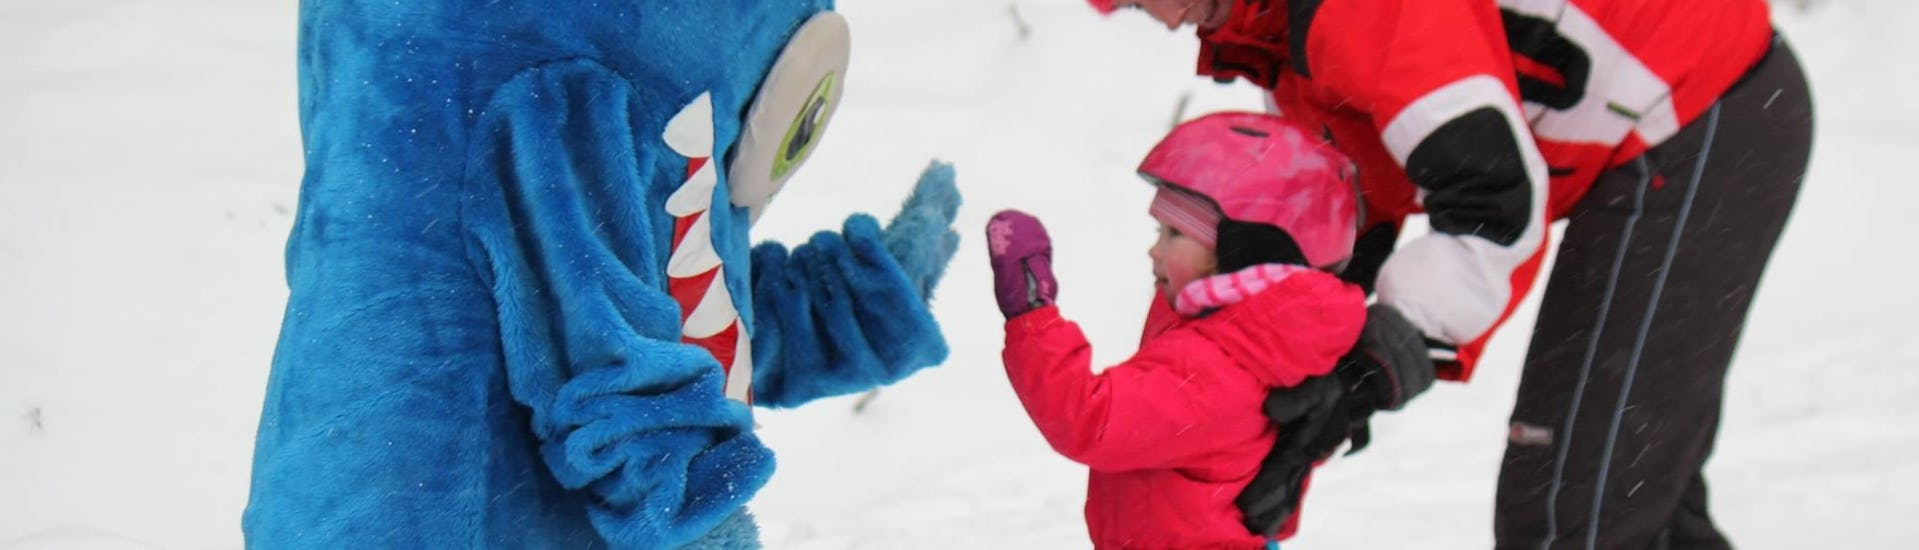 Ski Instructor Private for Kids (from 3 years) - Morning